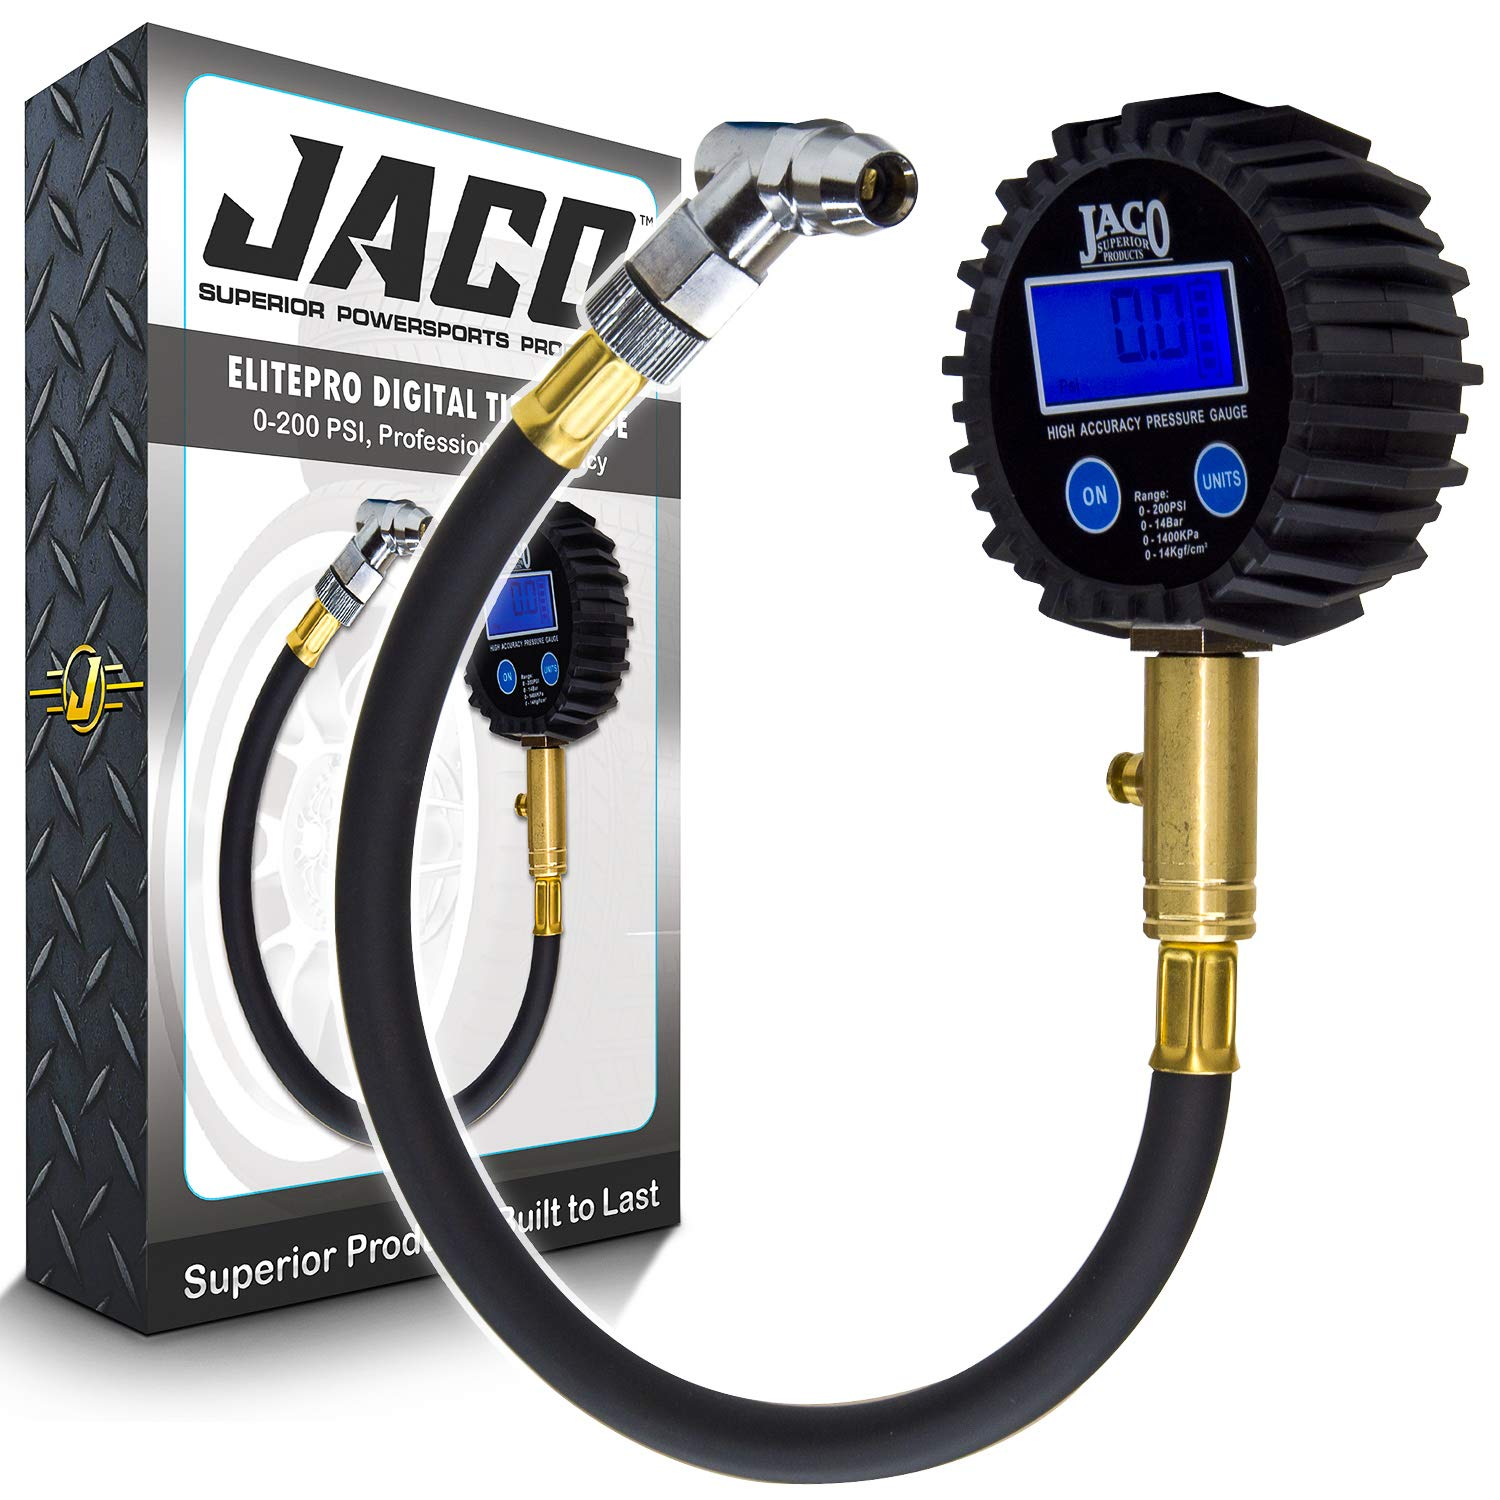 JACO ElitePro Digital Tire Pressure Gauge - Professional Accuracy - 200 PSI by JACO Superior Products